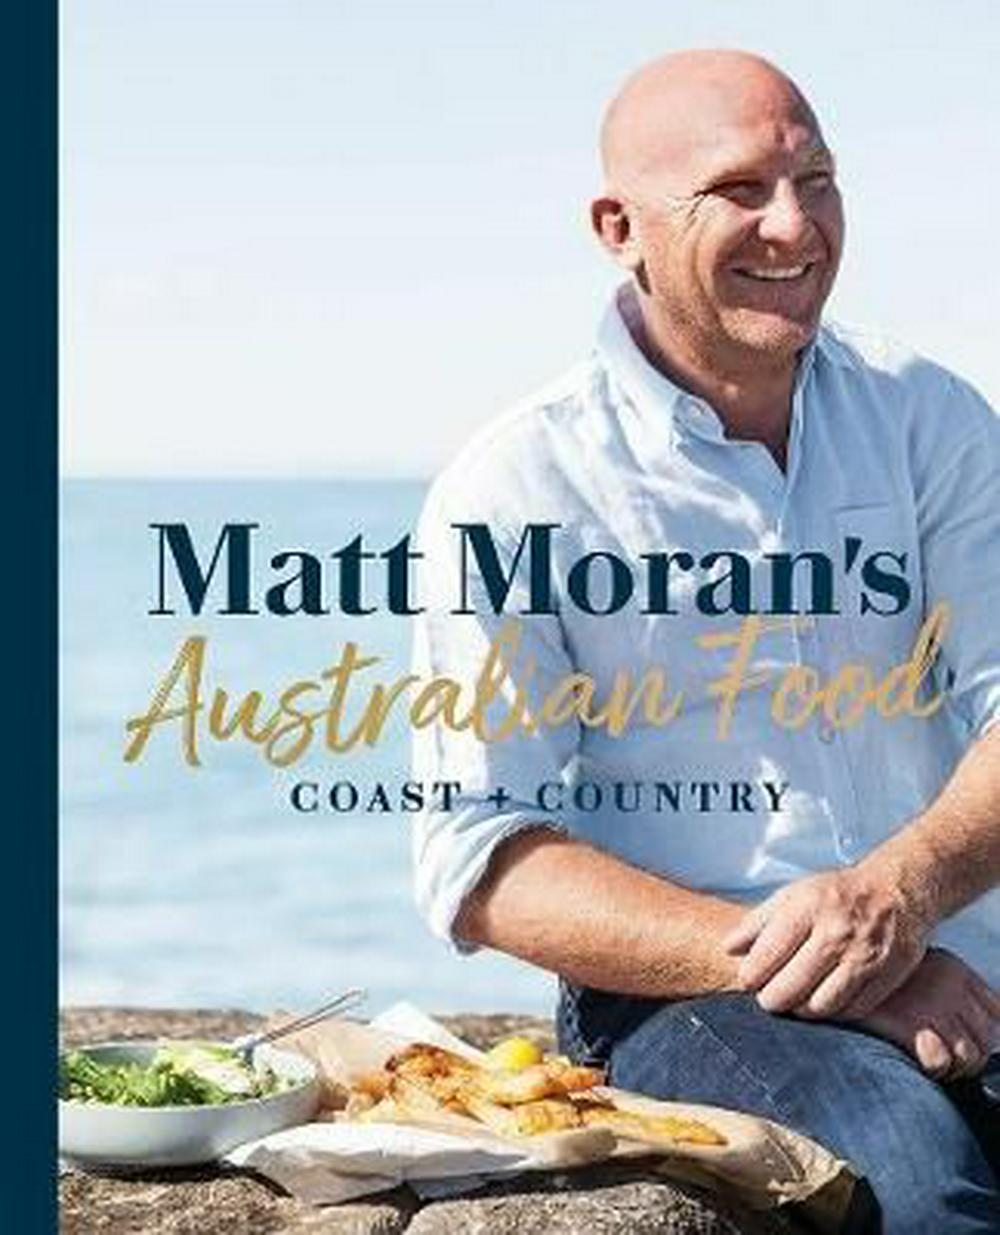 Matt Moran's Australian Food - Pre-order Your Signed Copy!Coast + Country